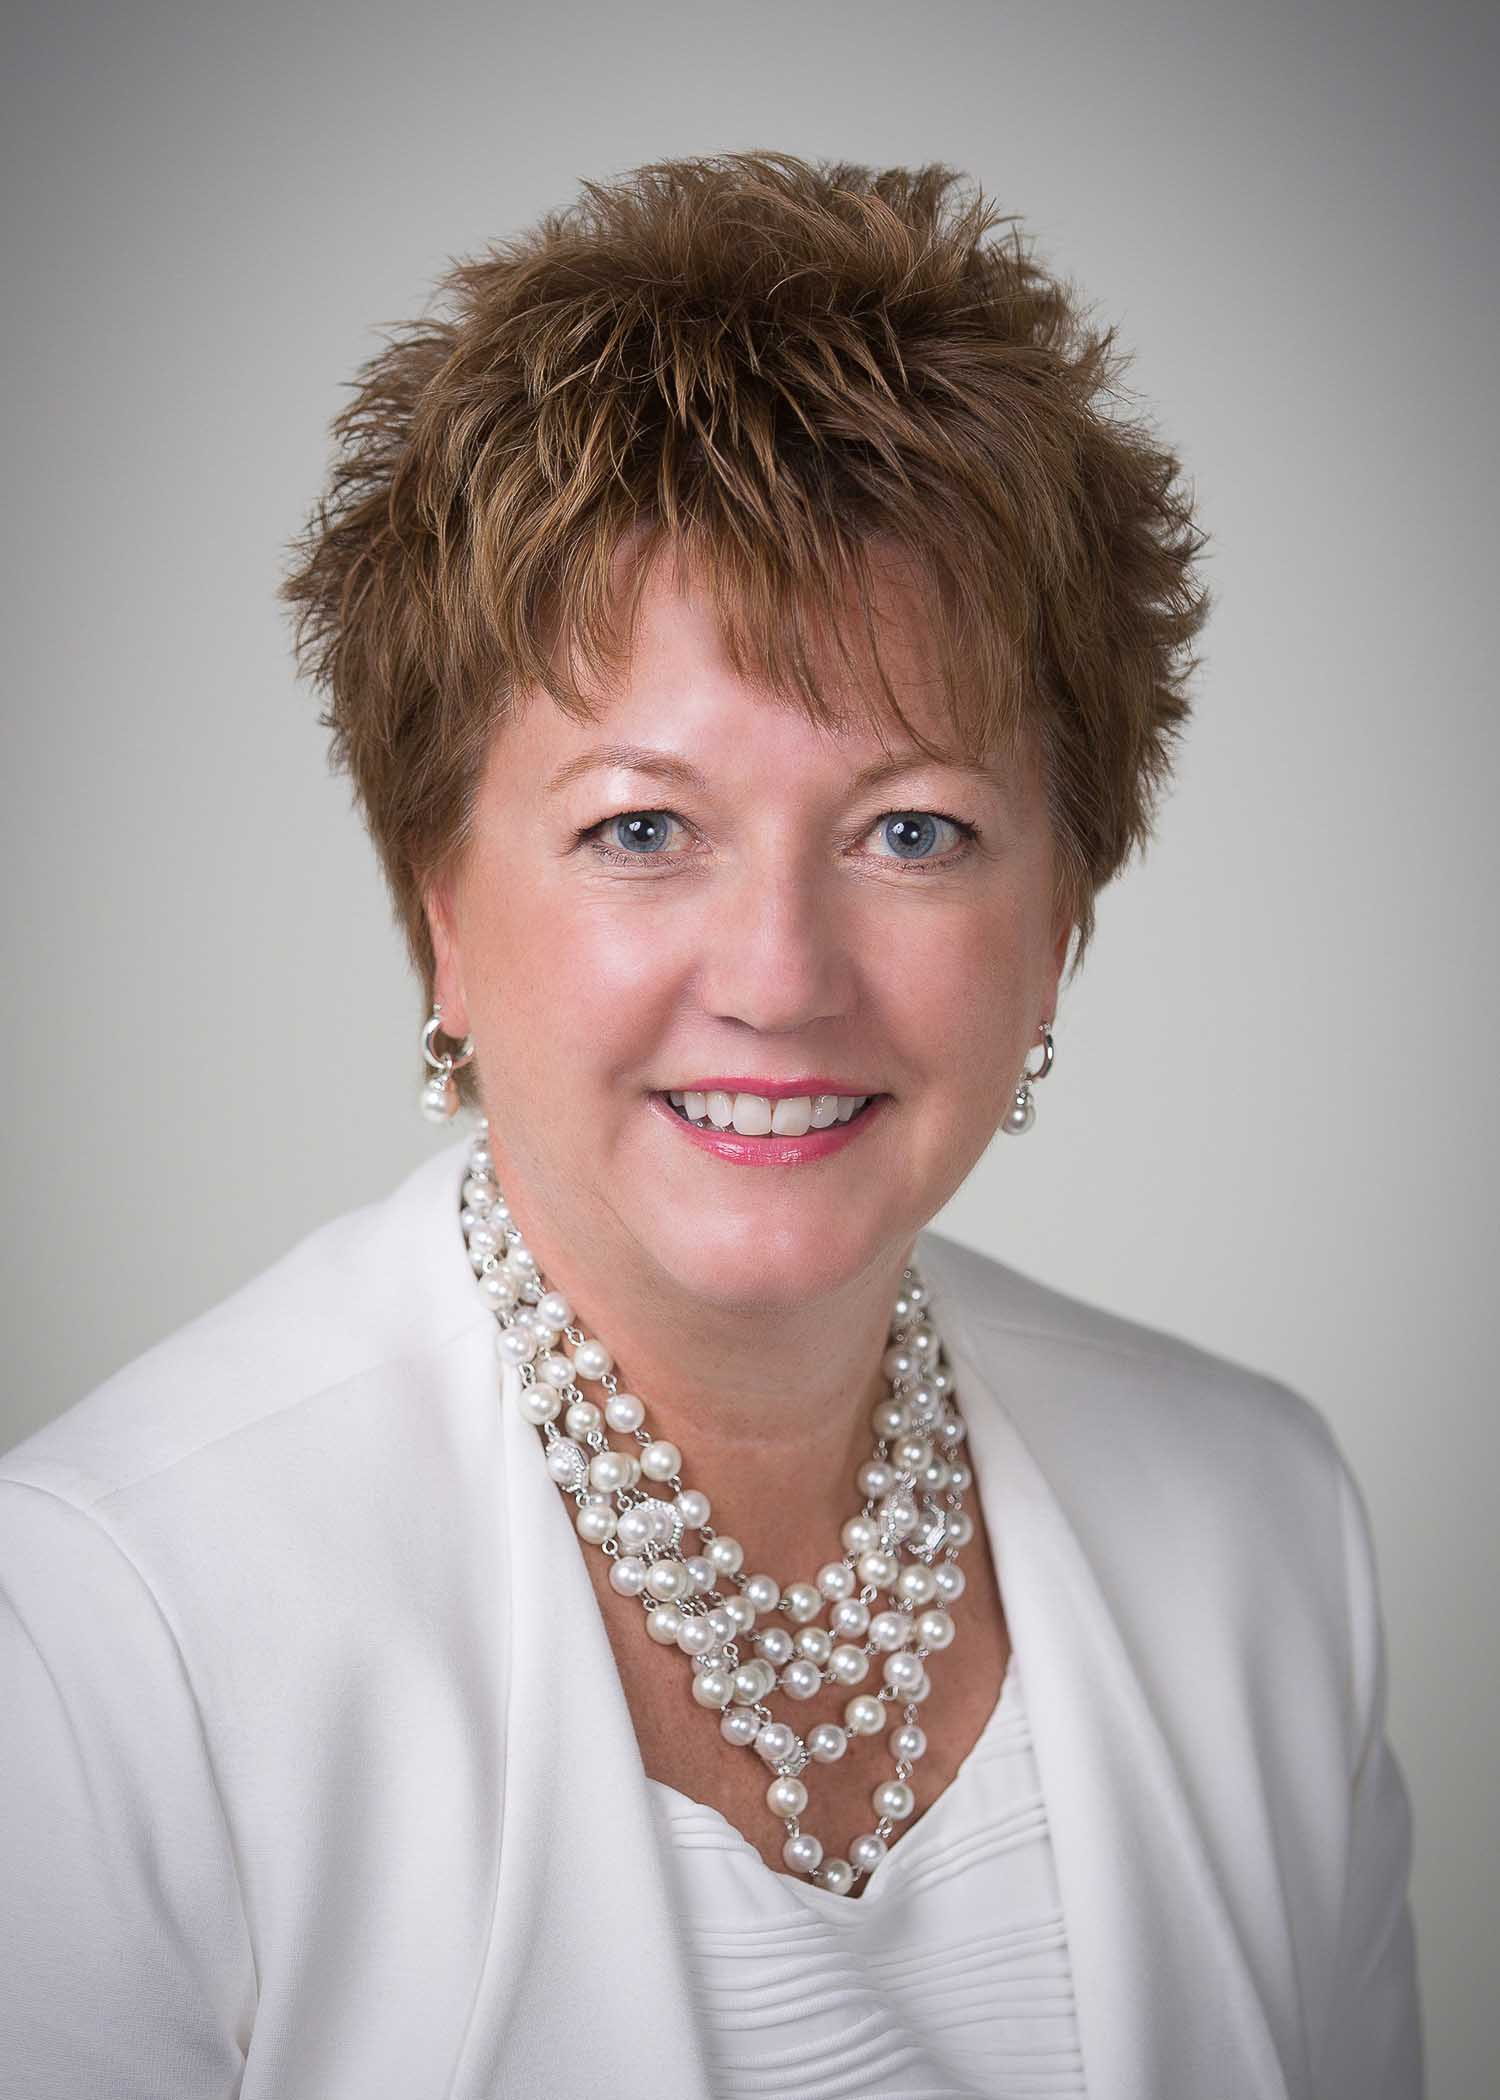 Beth Talbert has taught courses in leadership, women in leadership, persuasion, gender communication, group dynamics, professional communication, public speaking and interpersonal conflict at Oakland University.